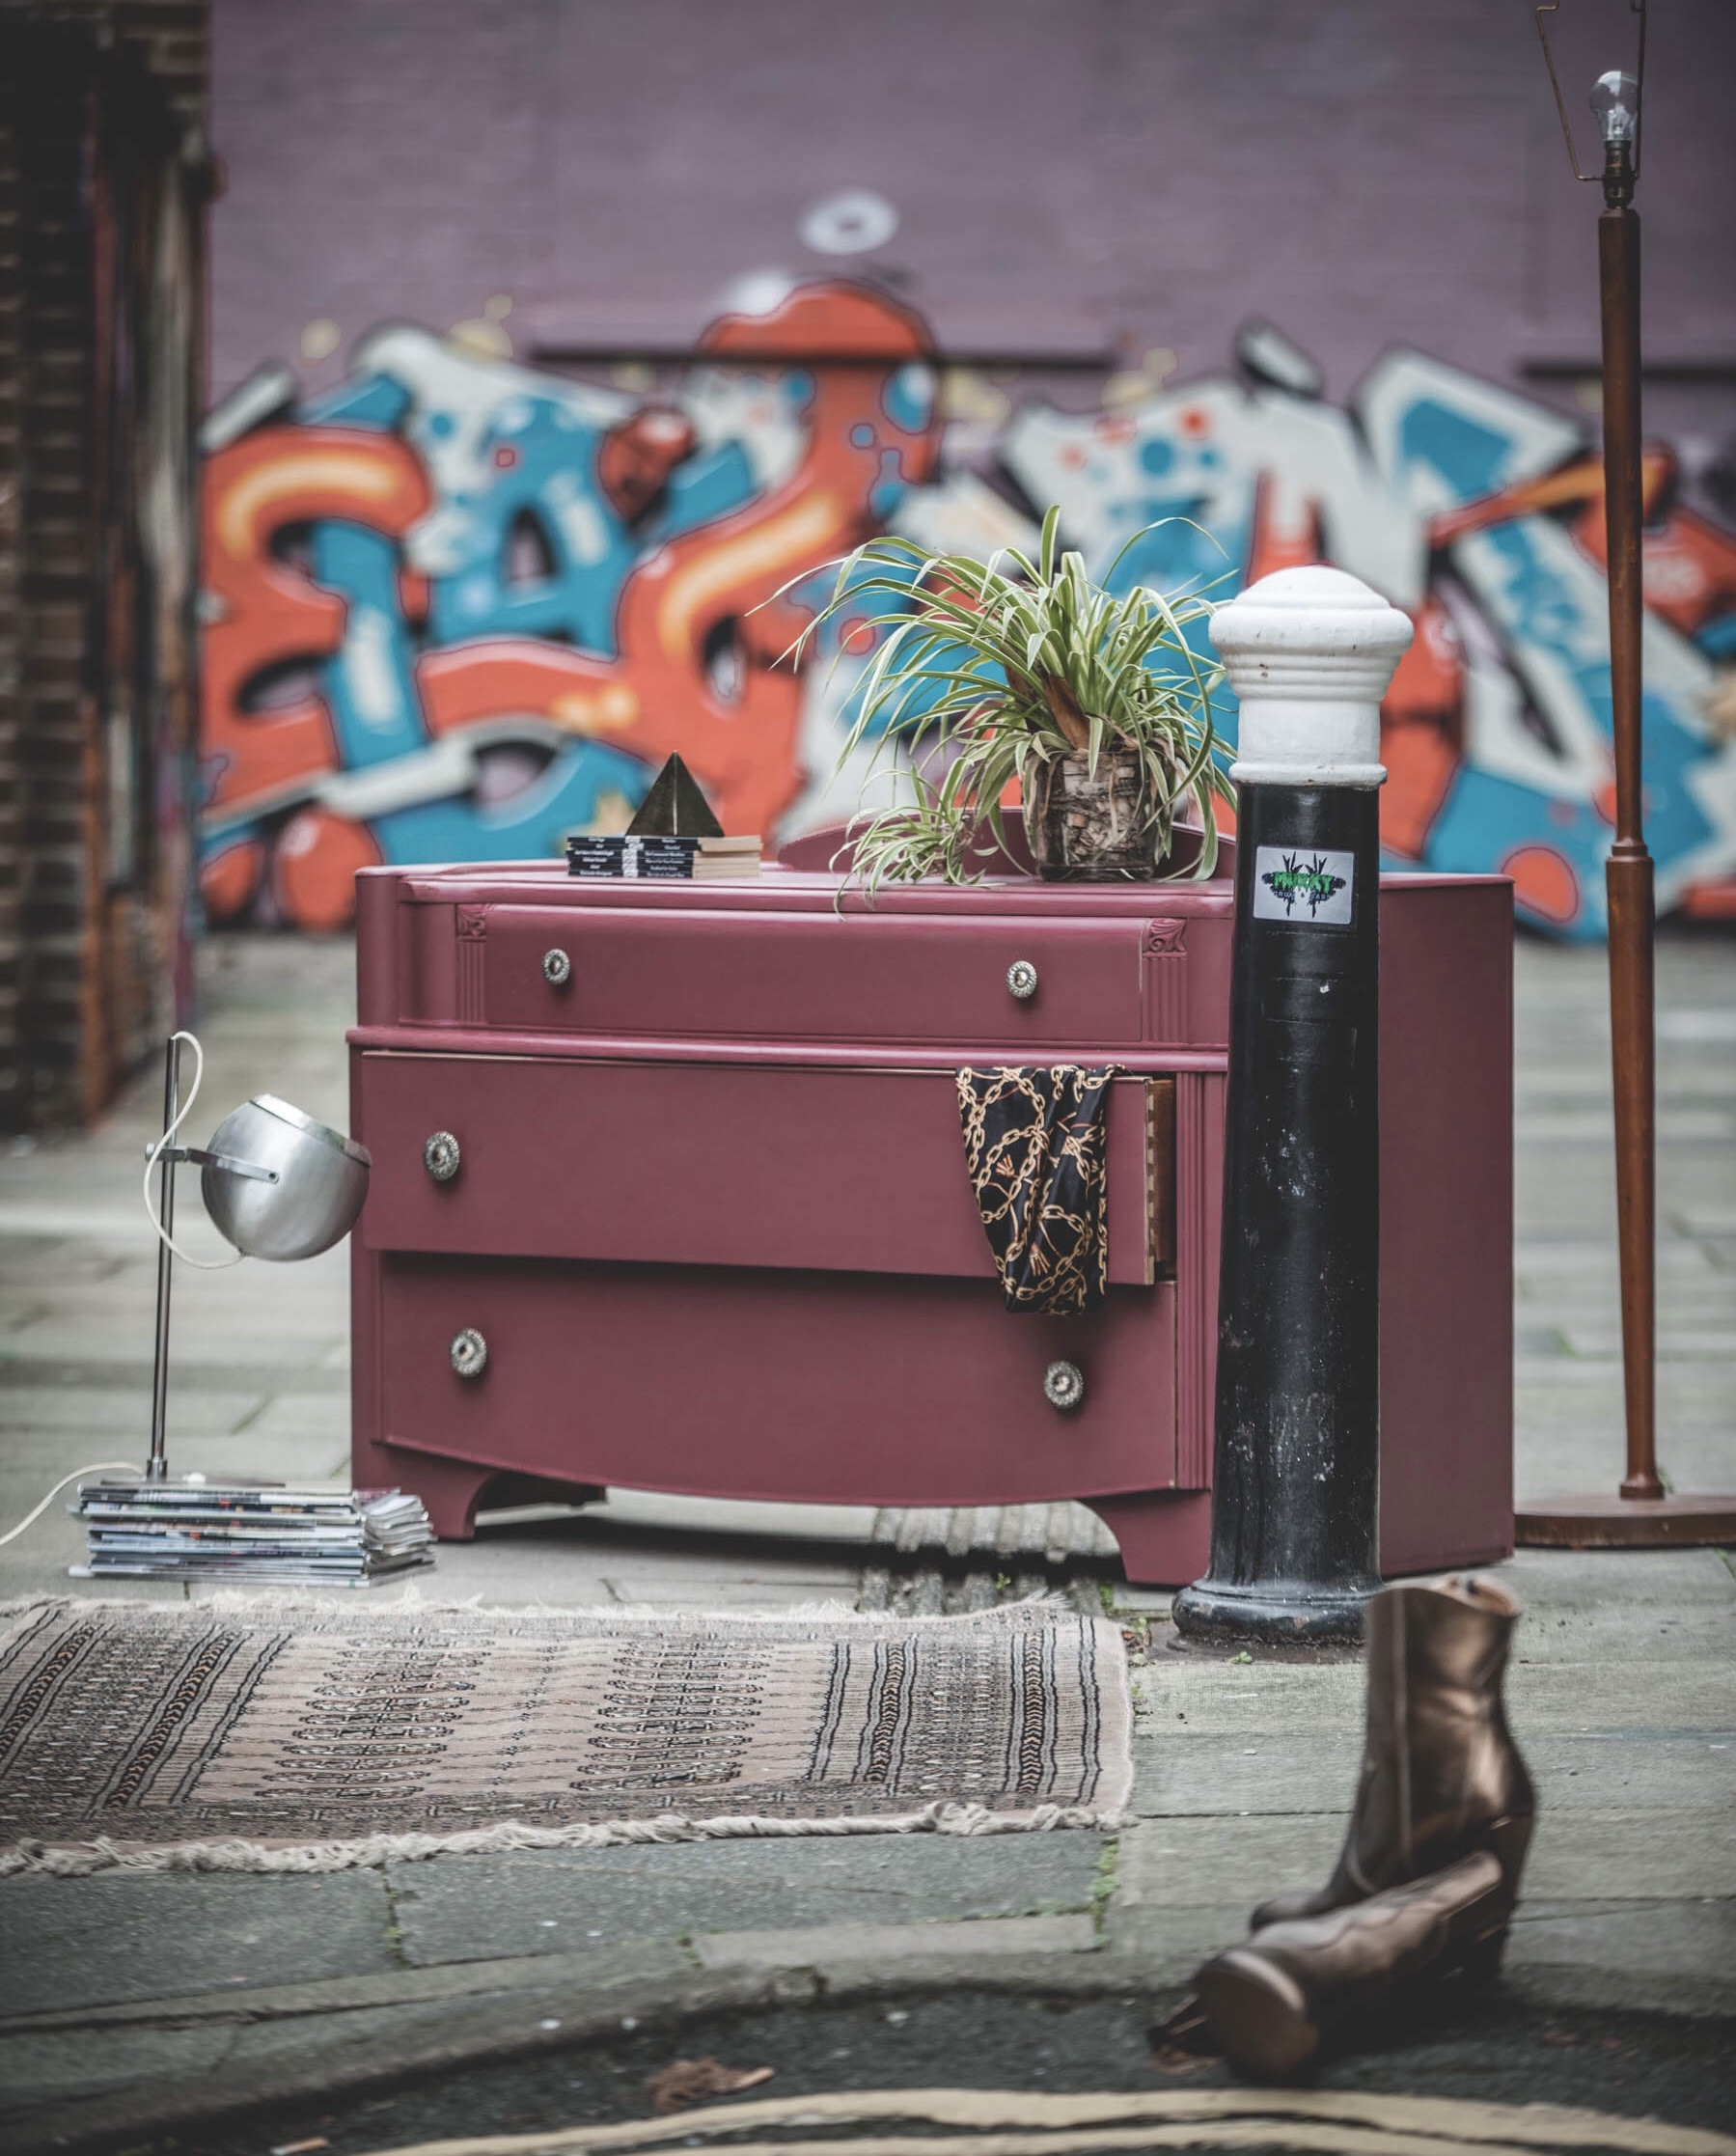 Upcycling vintage and retro furniture…. - upcycling definition: 'reuse discarded objects or material in such a way as to create a product of higher quality or value than the original' - the collins dictionary